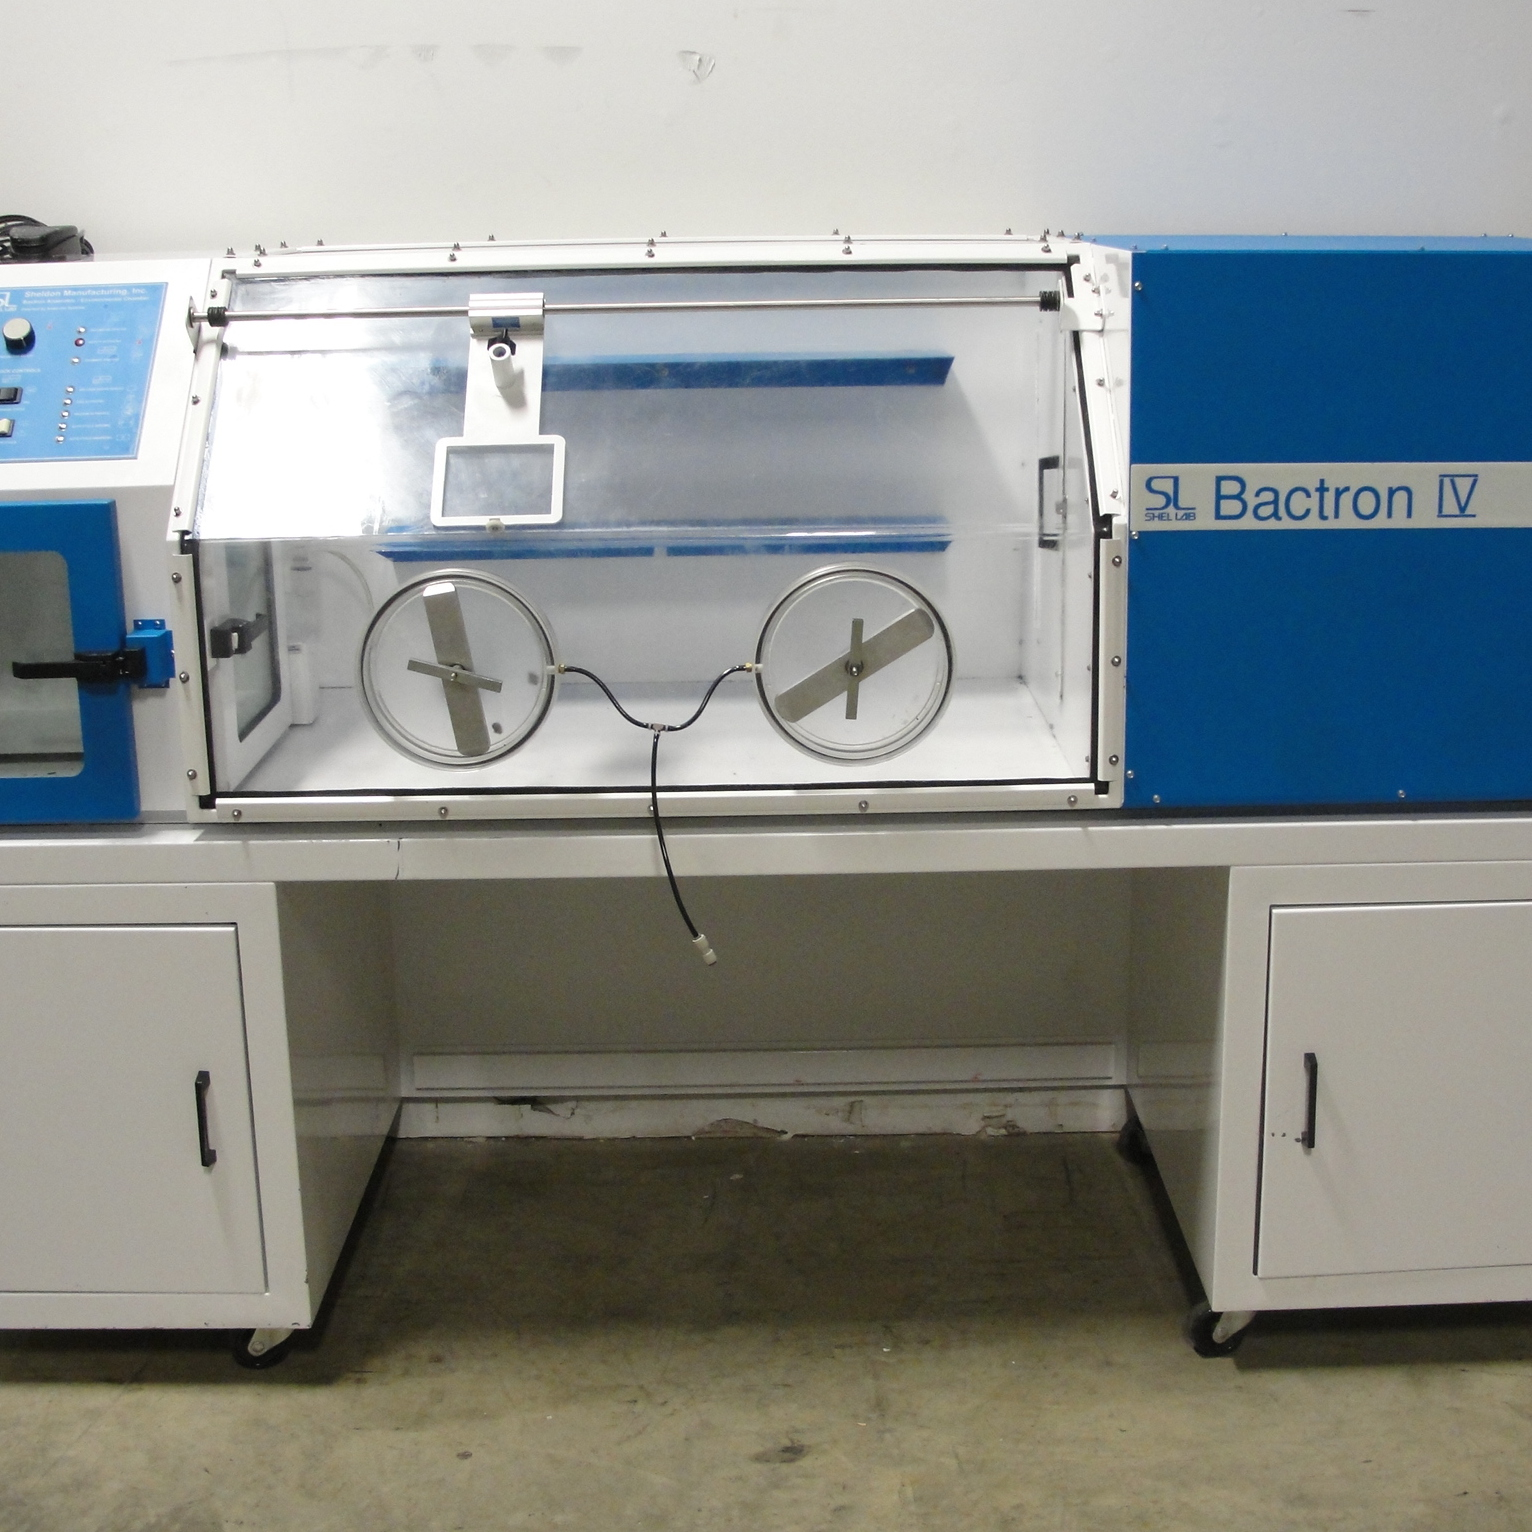 anaerobic lab The bactron anaerobic environmental chamber is designed to allow efficient and dexterous glove-free handling and inspection of samples.